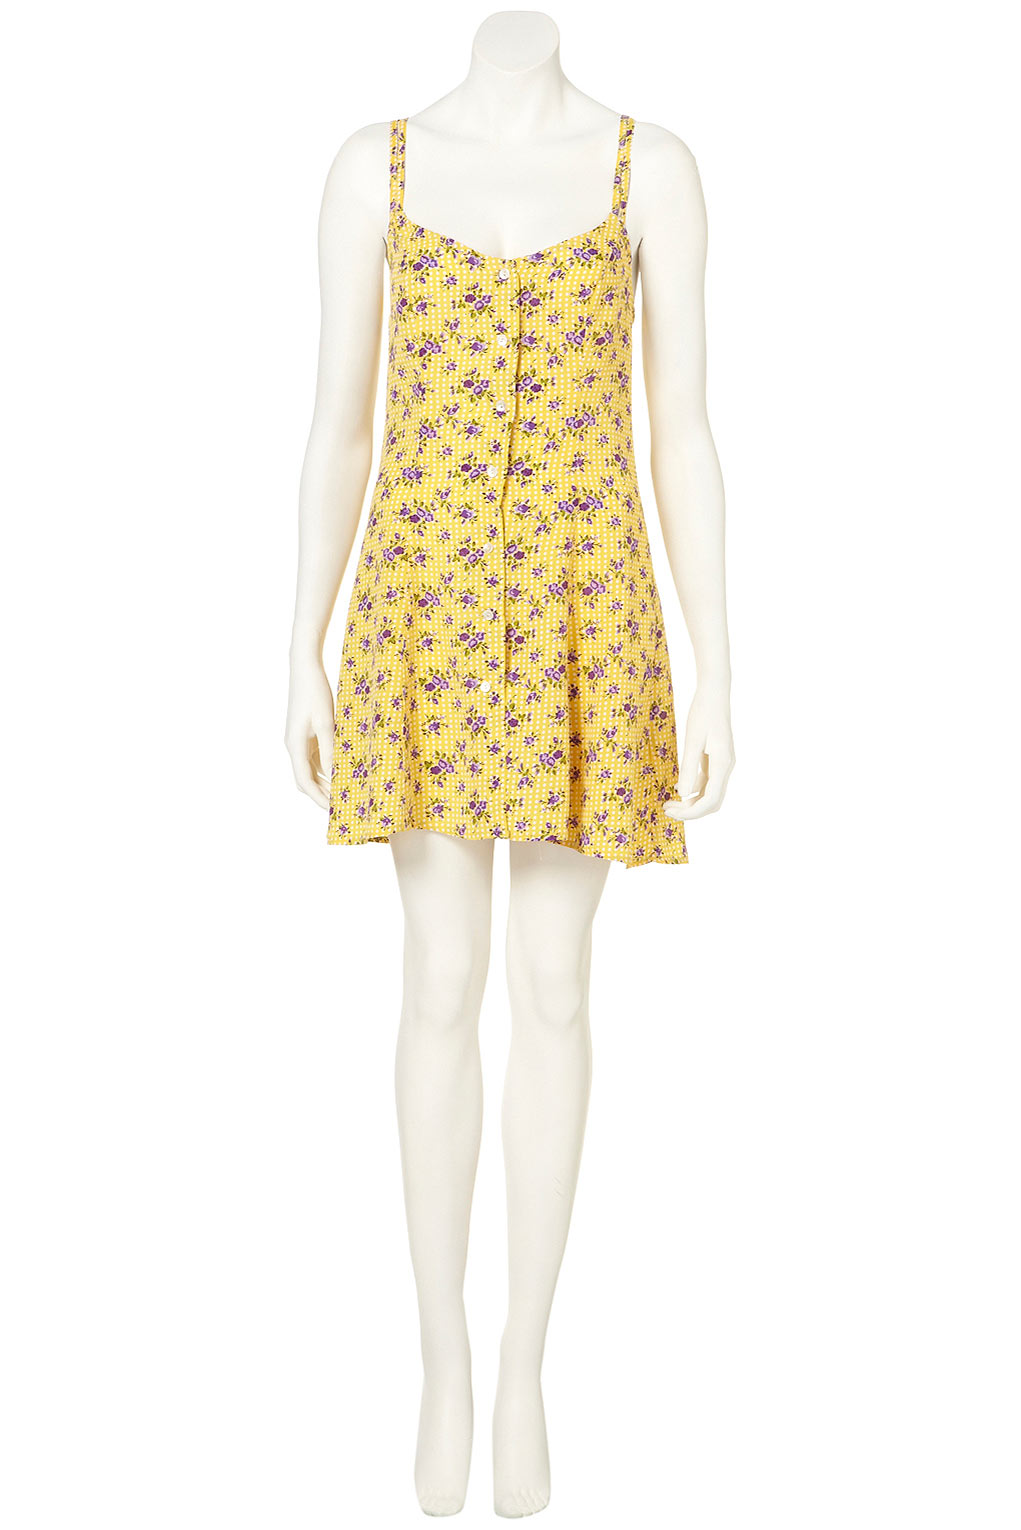 Lyst Topshop Flower Spot Strappy Sundress In Yellow